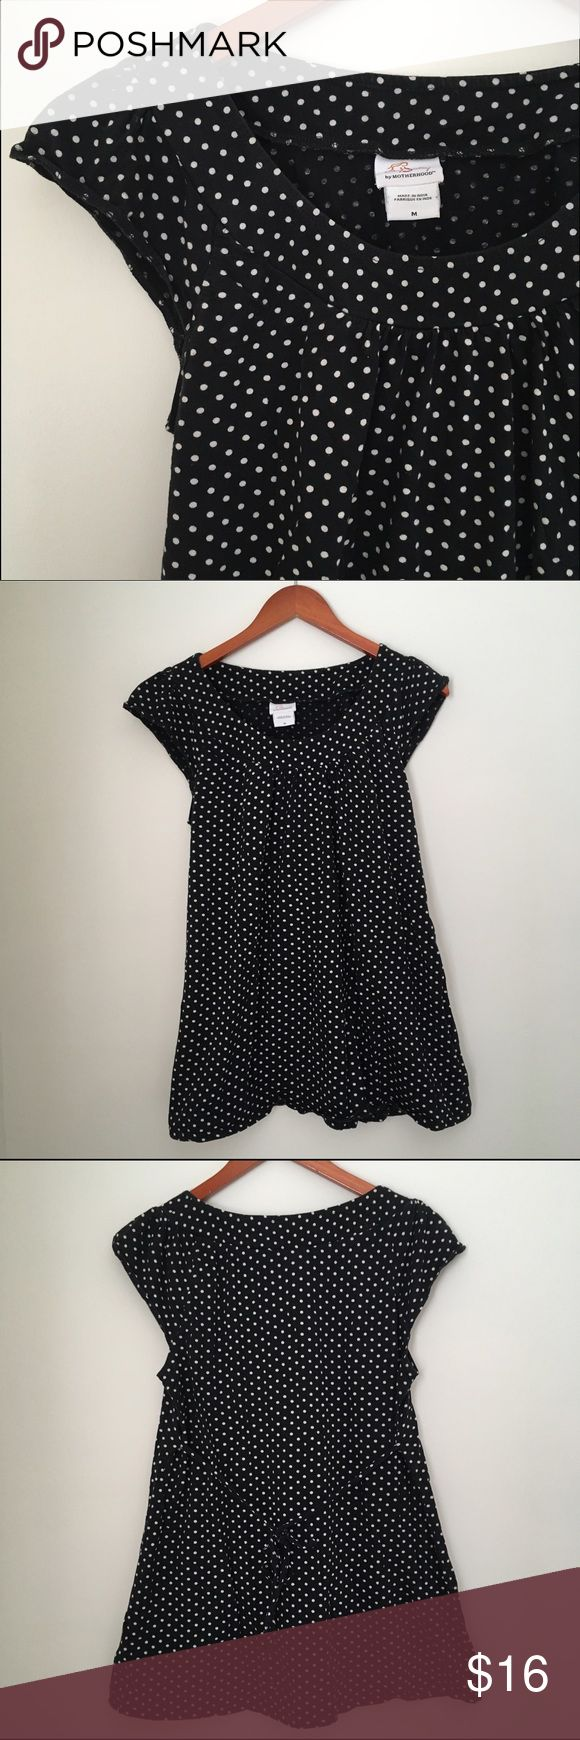 Crib for sale kijiji toronto -  Motherhood Black Polkadot Tee Medium Motherhood Black Polka Dot Empire Waist Maternity Tee Tie